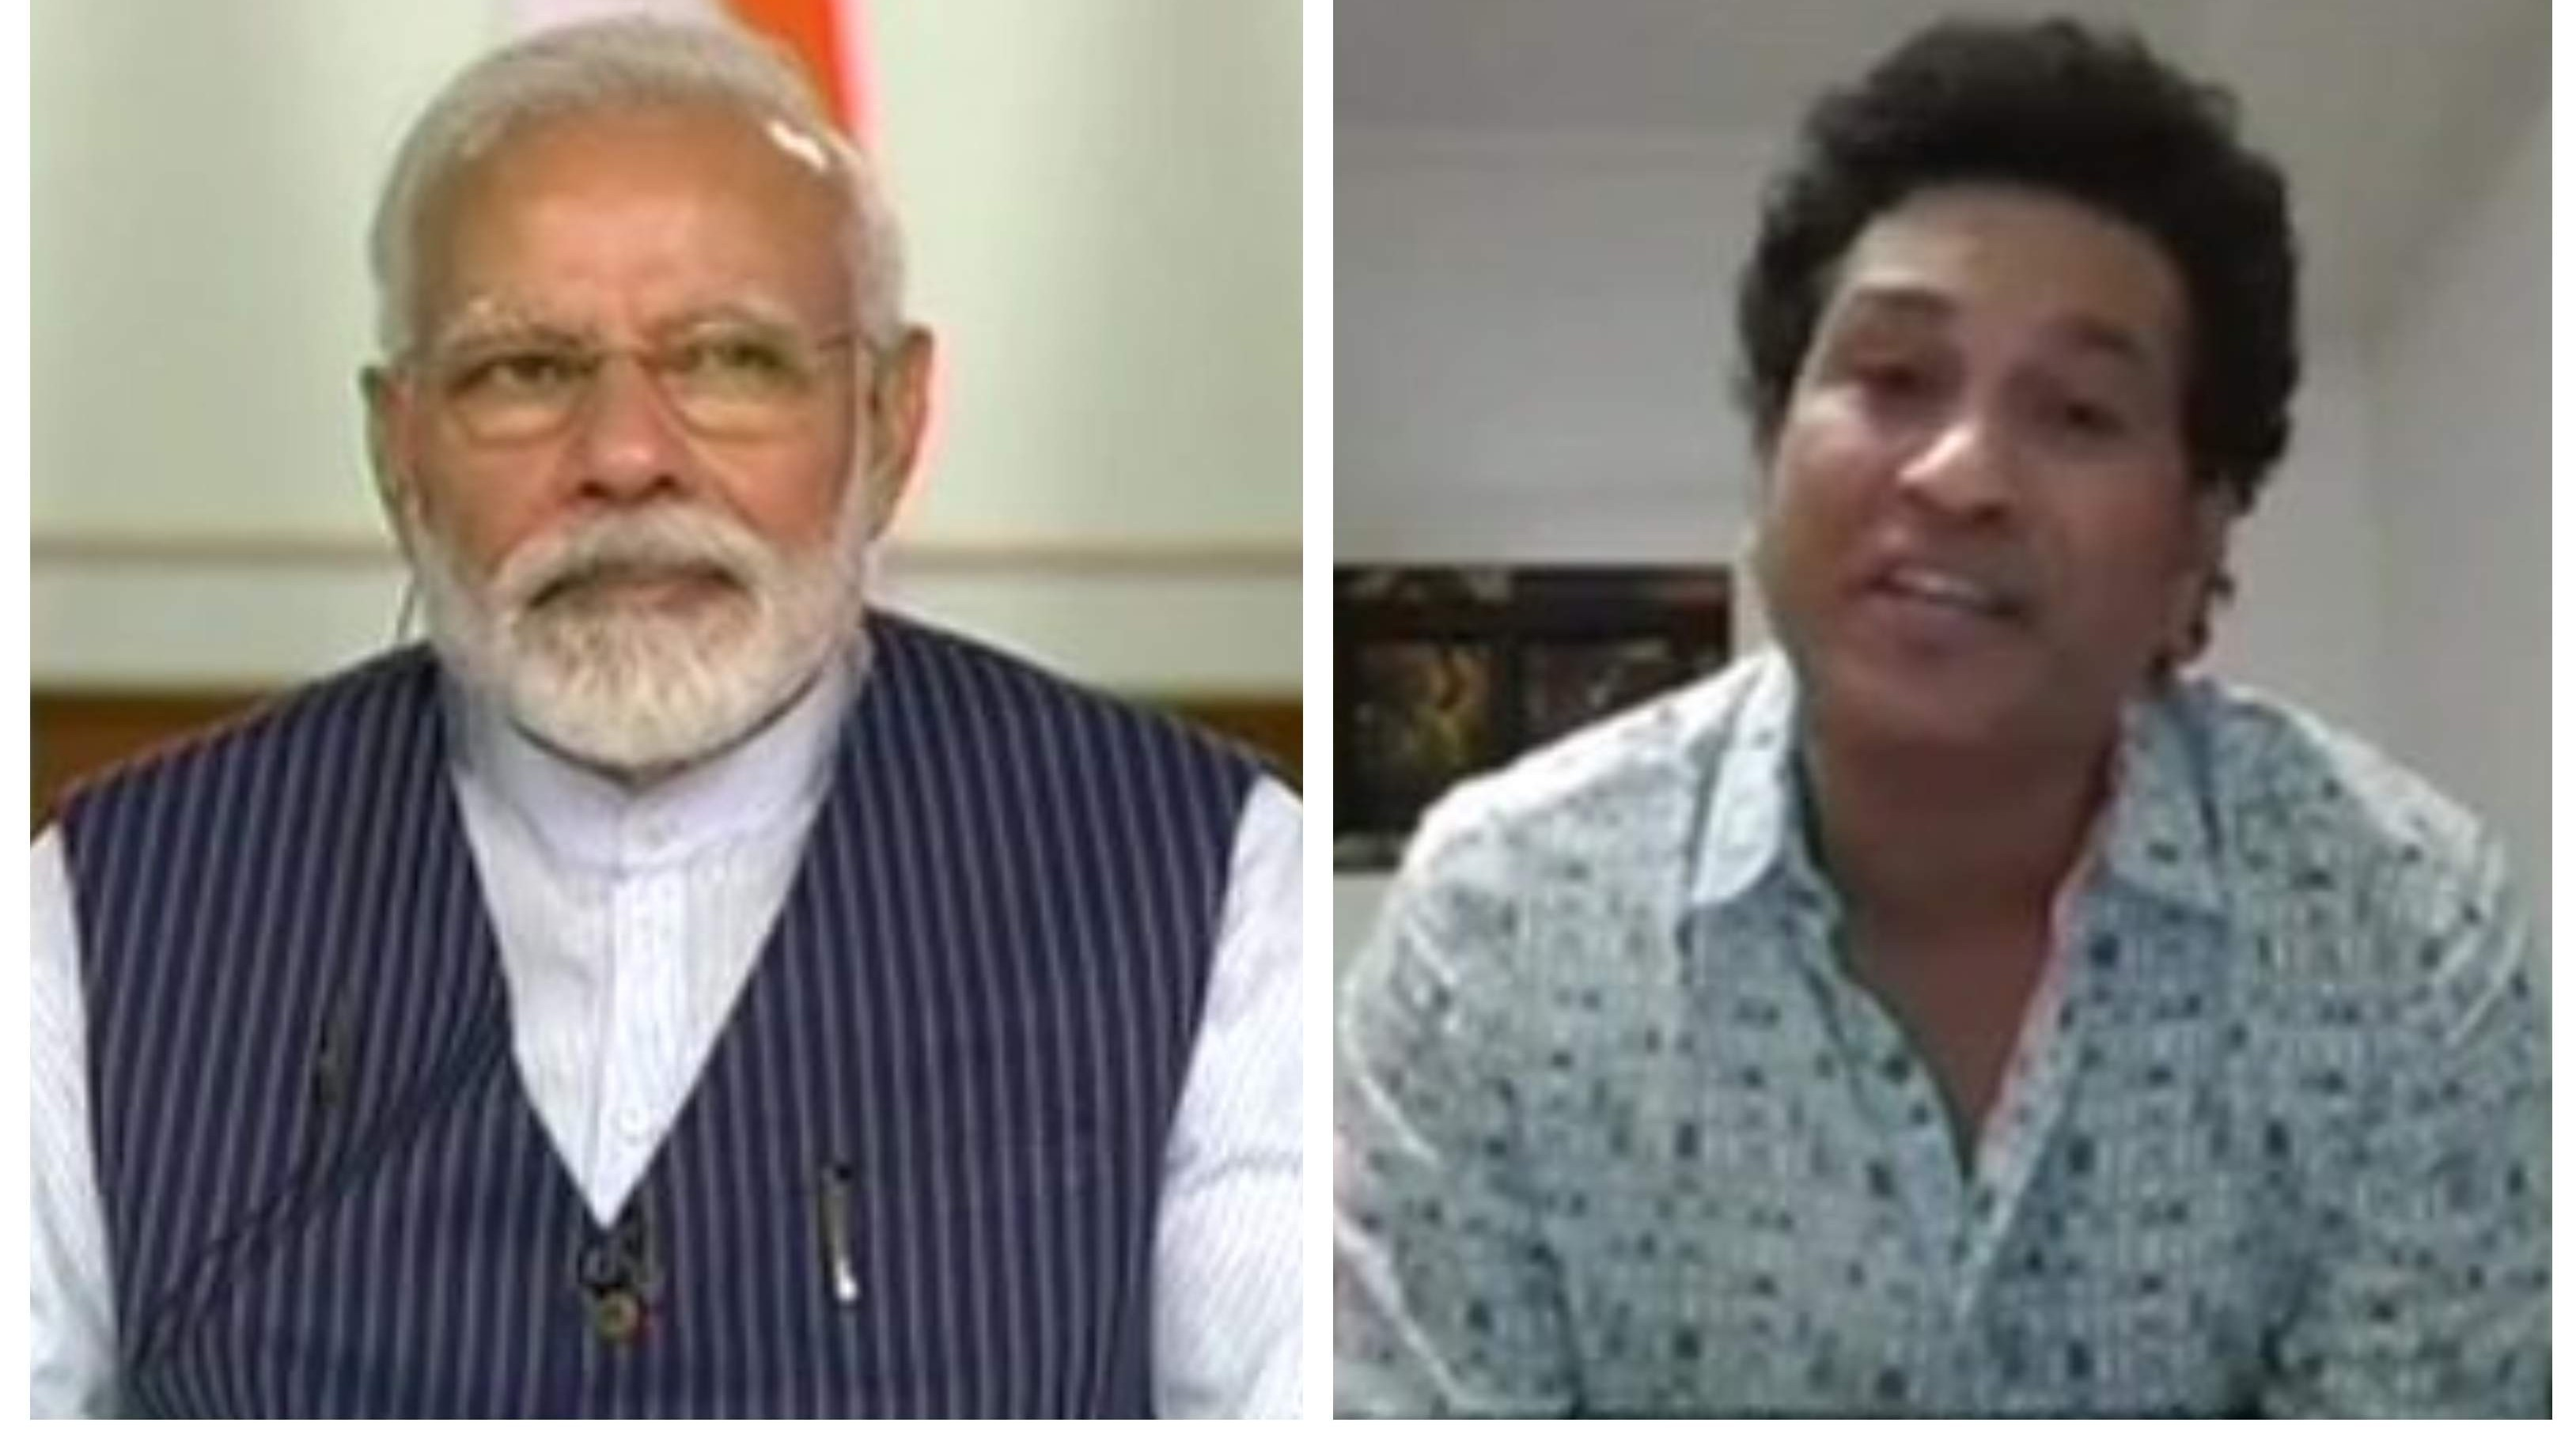 Sachin Tendulkar shares details of video conference with PM Modi amid COVID-19 lockdown